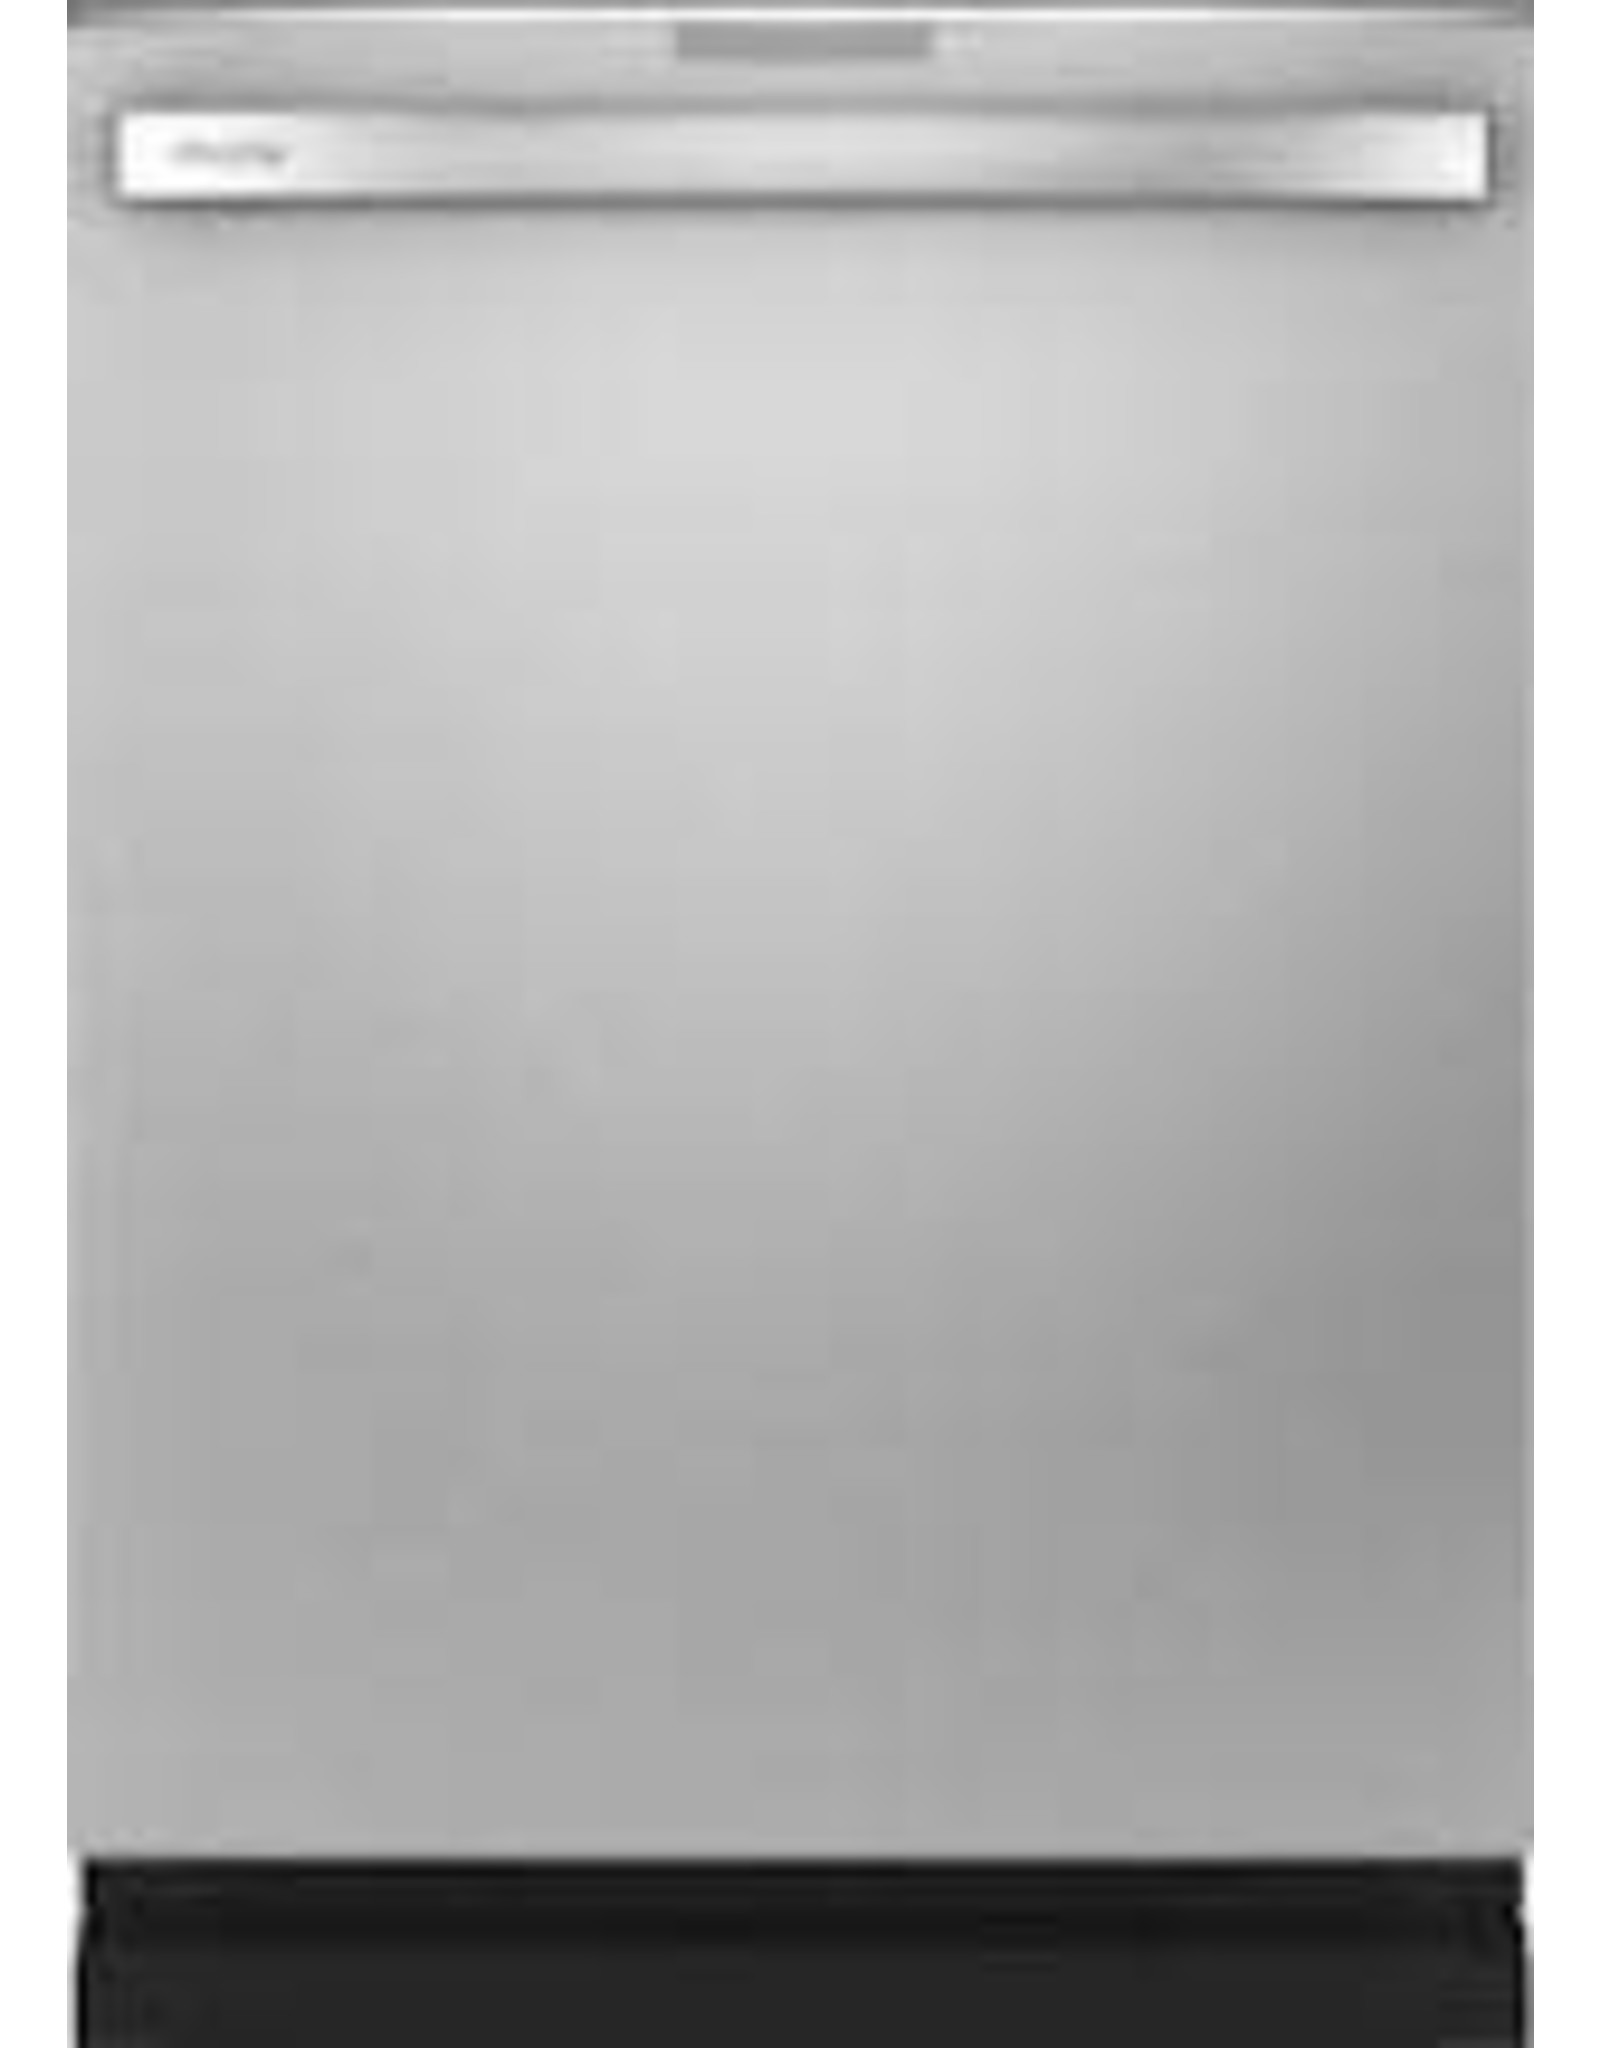 GE PROFILE PDT785SYNFS Profile 24 in. Stainless Steel Top Control Smart Built-In Tall Tub Dishwasher with 3rd Rack and Ultra Quiet 39 dBA